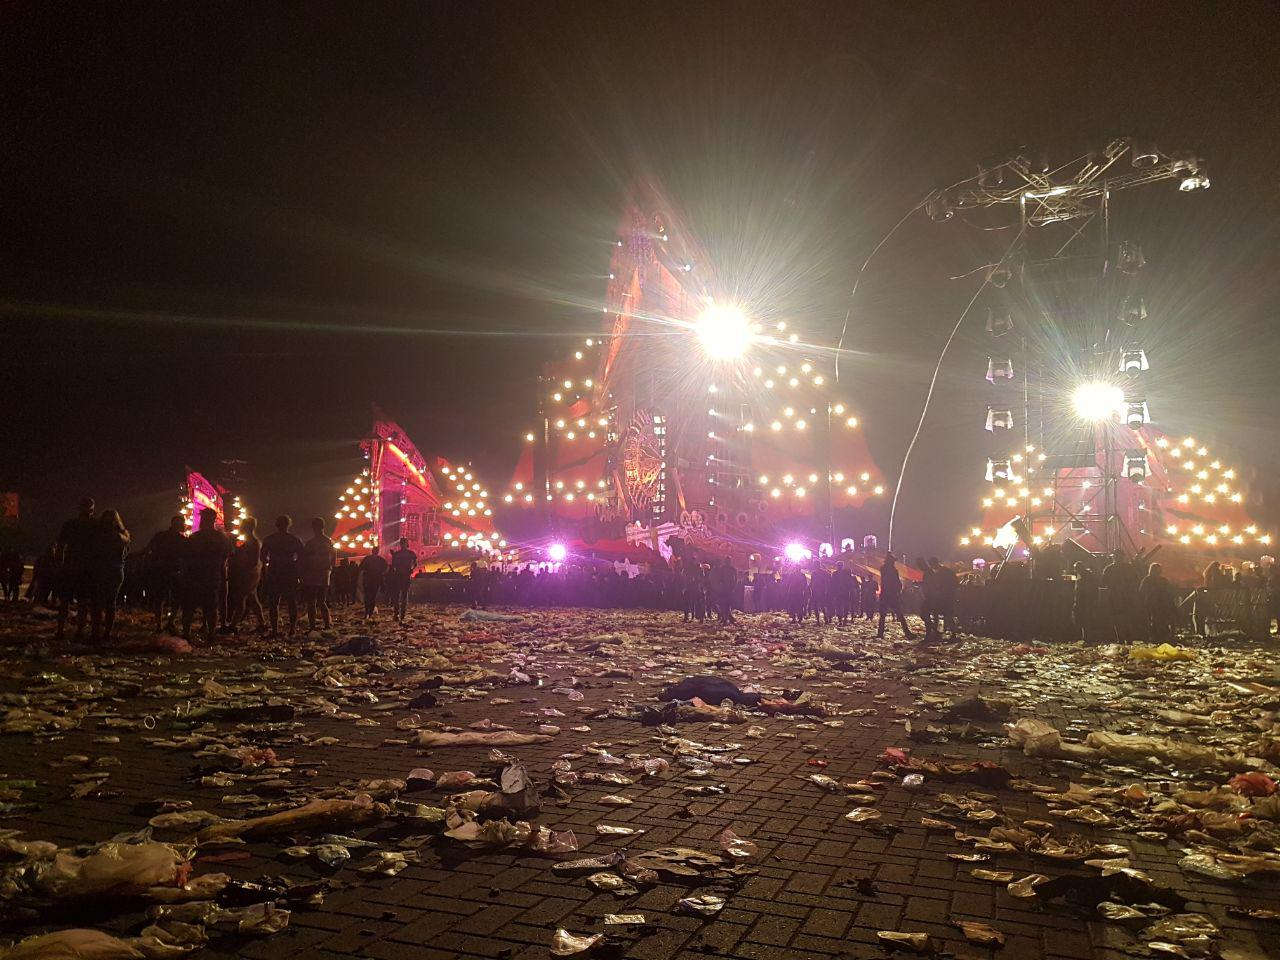 [img width=1024 height=768]http://eindefotos.nl/images/newspost_images/2017-defqon1_pre.jpg[/img]